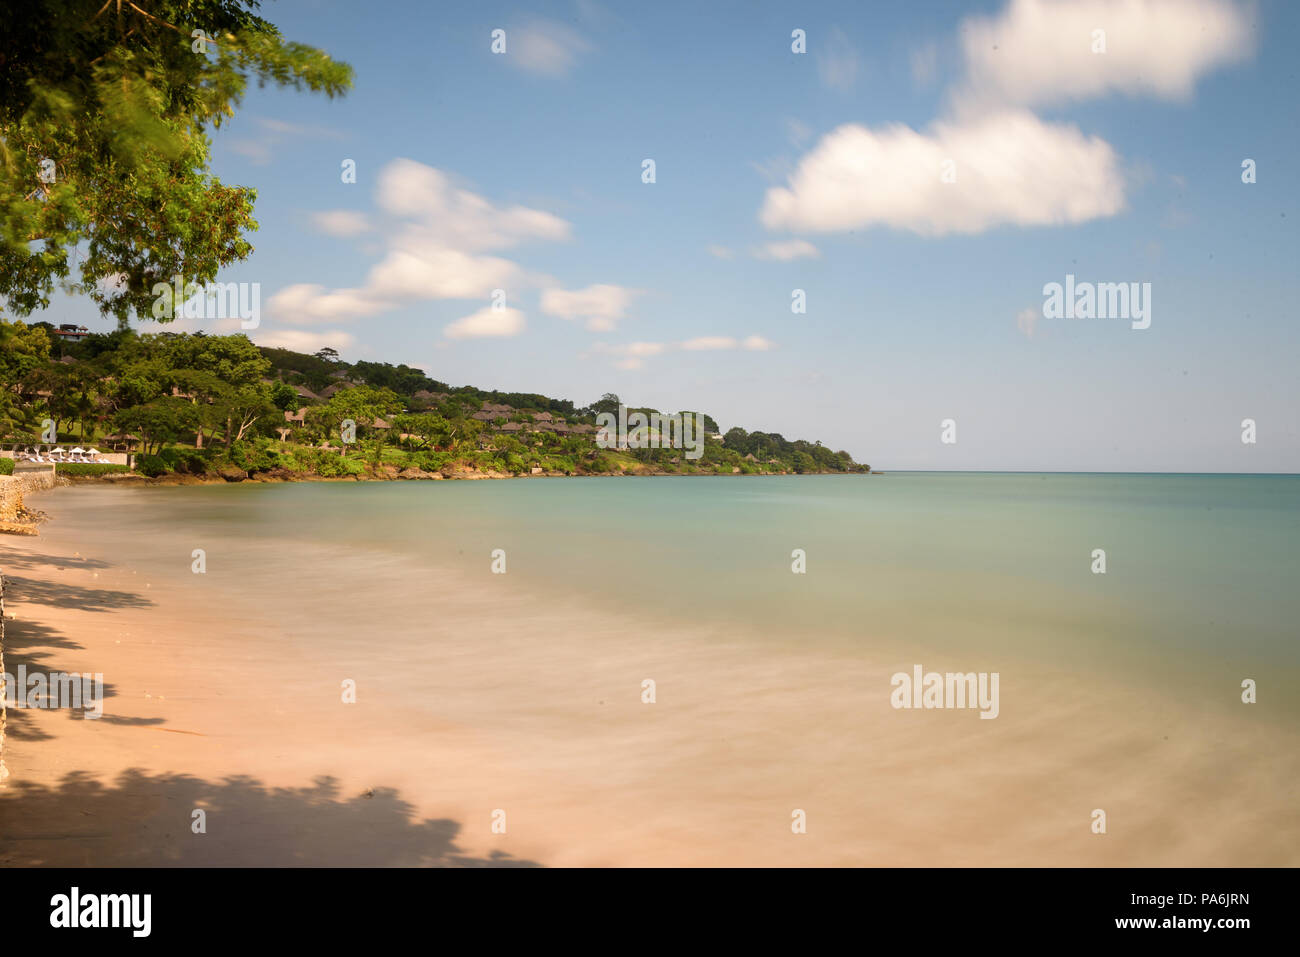 Jimbaran Beach Bali Indonesia Stock Photo 212817465 Alamy